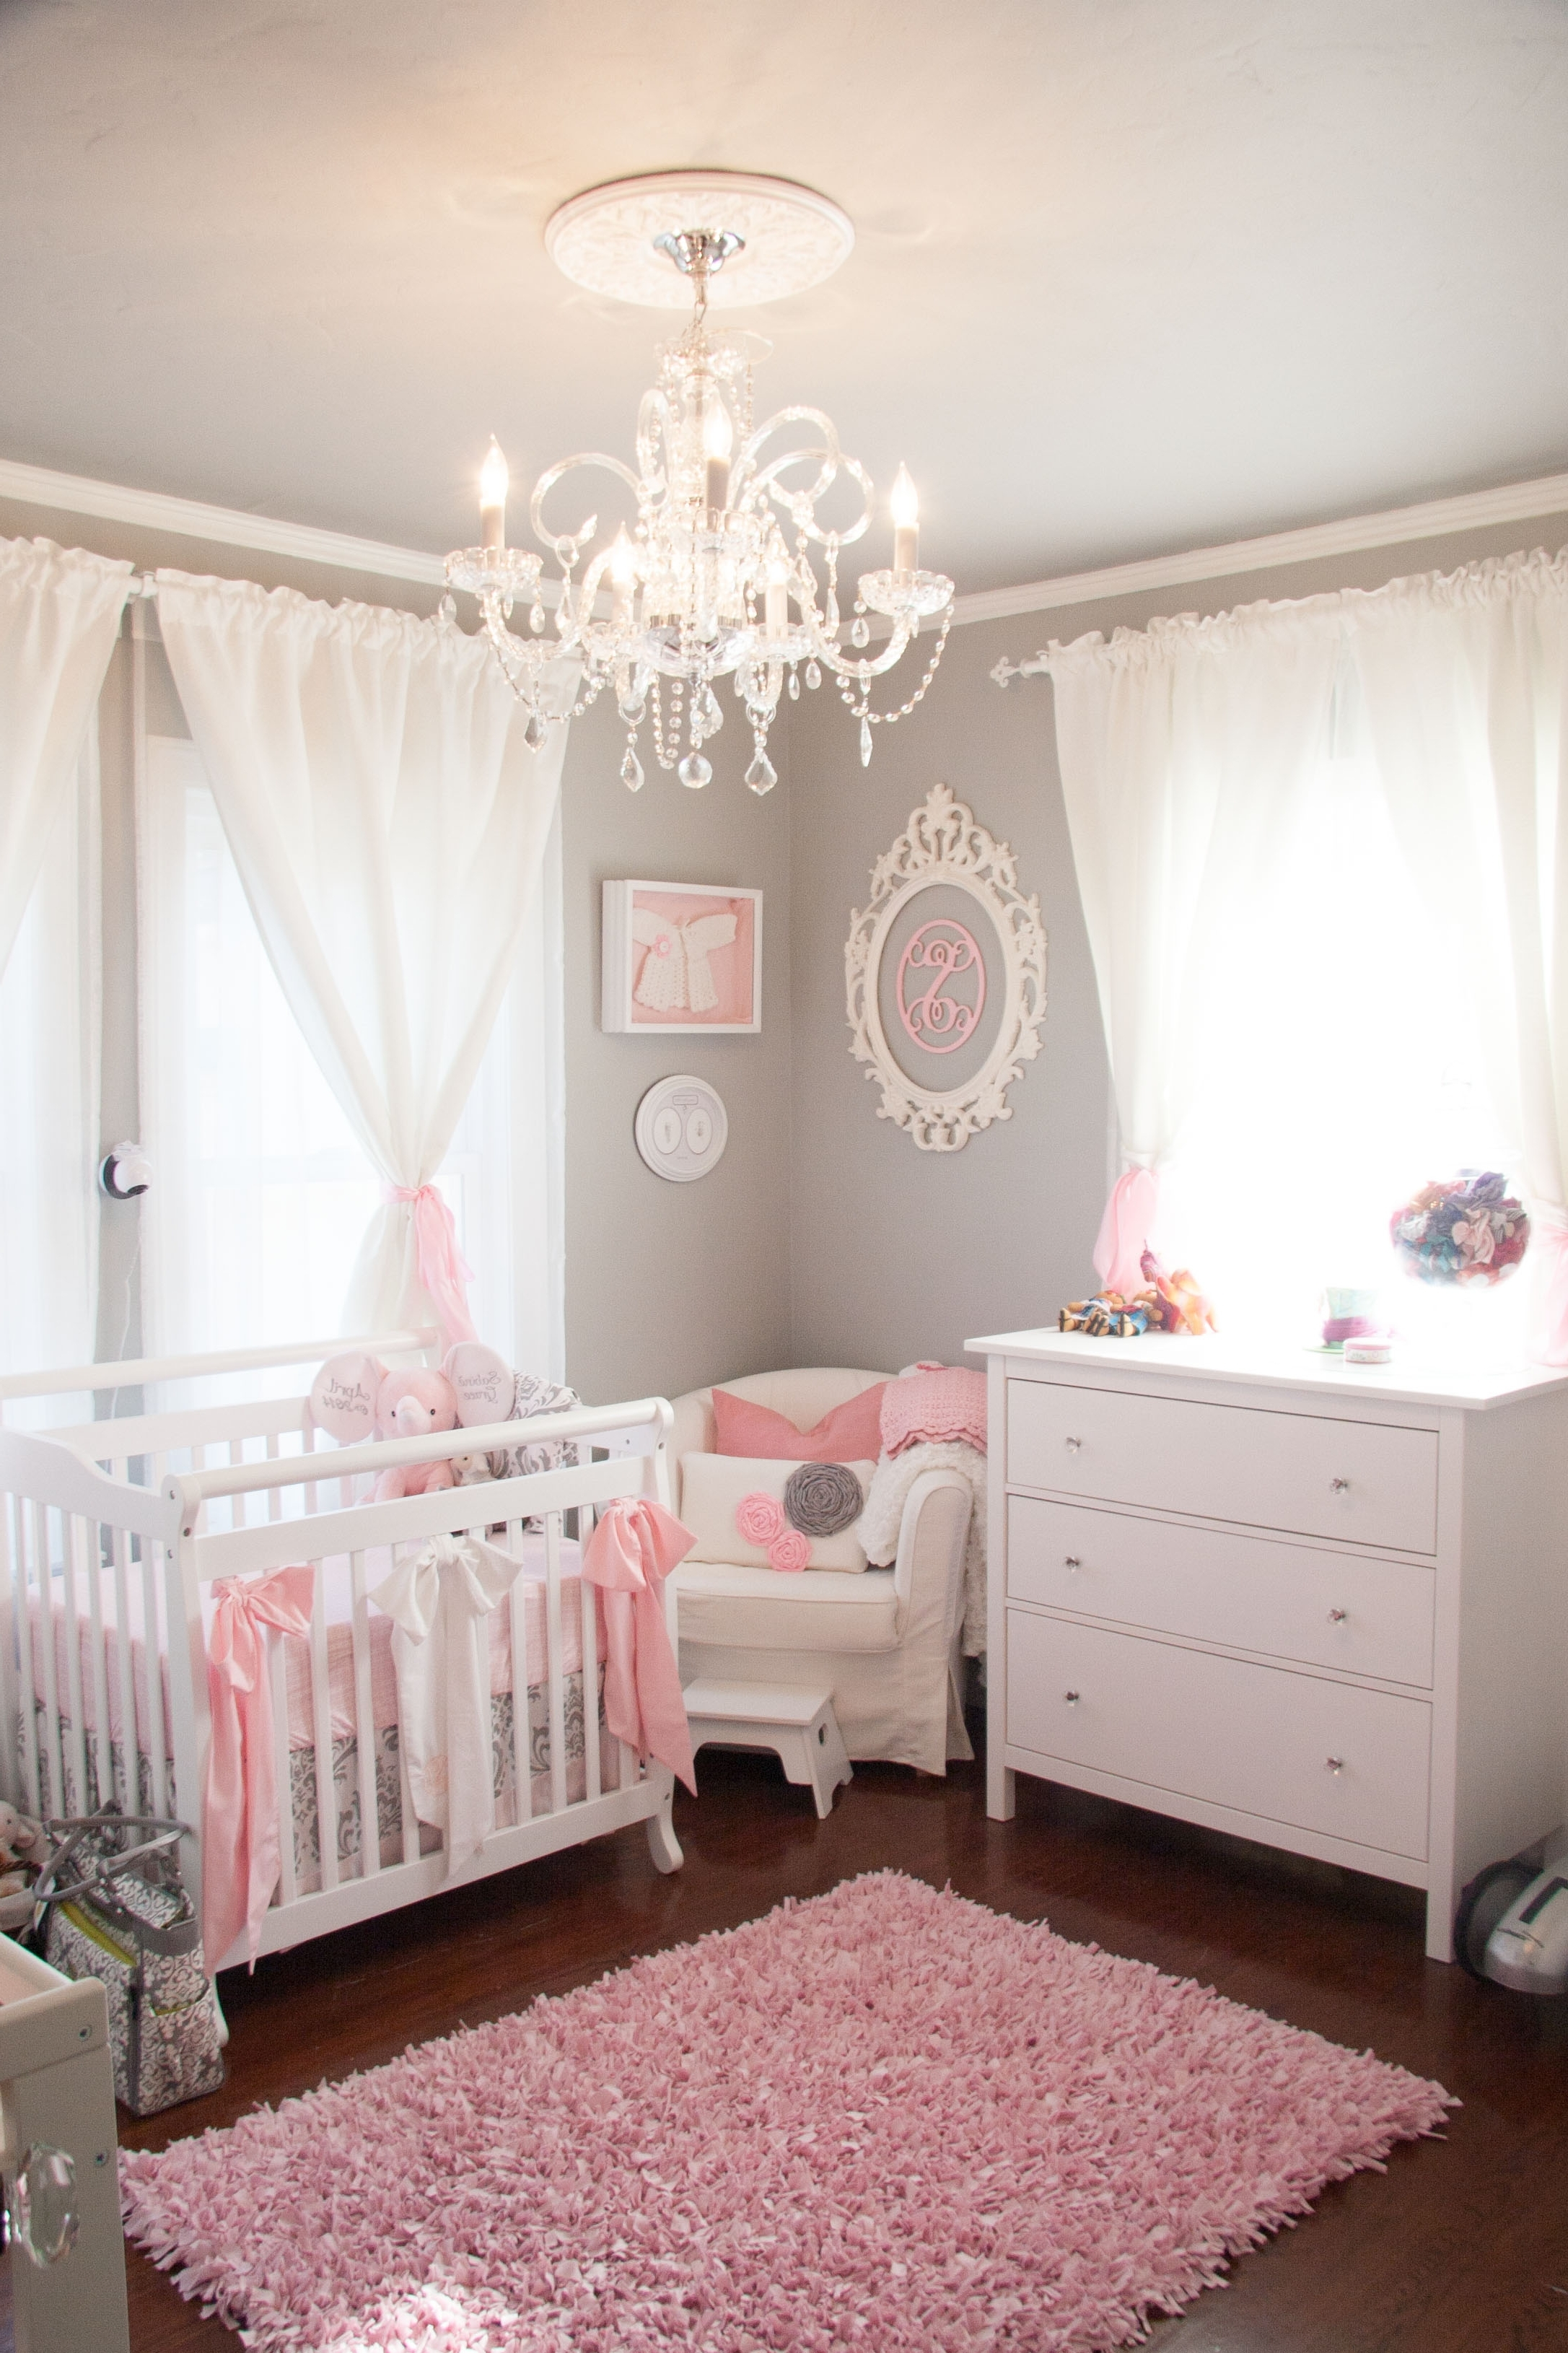 Most Up To Date Cheap Chandeliers For Baby Girl Room With Regard To Tiny Budget In A Tiny Room For A Tiny Princess – Project Nursery (View 8 of 15)